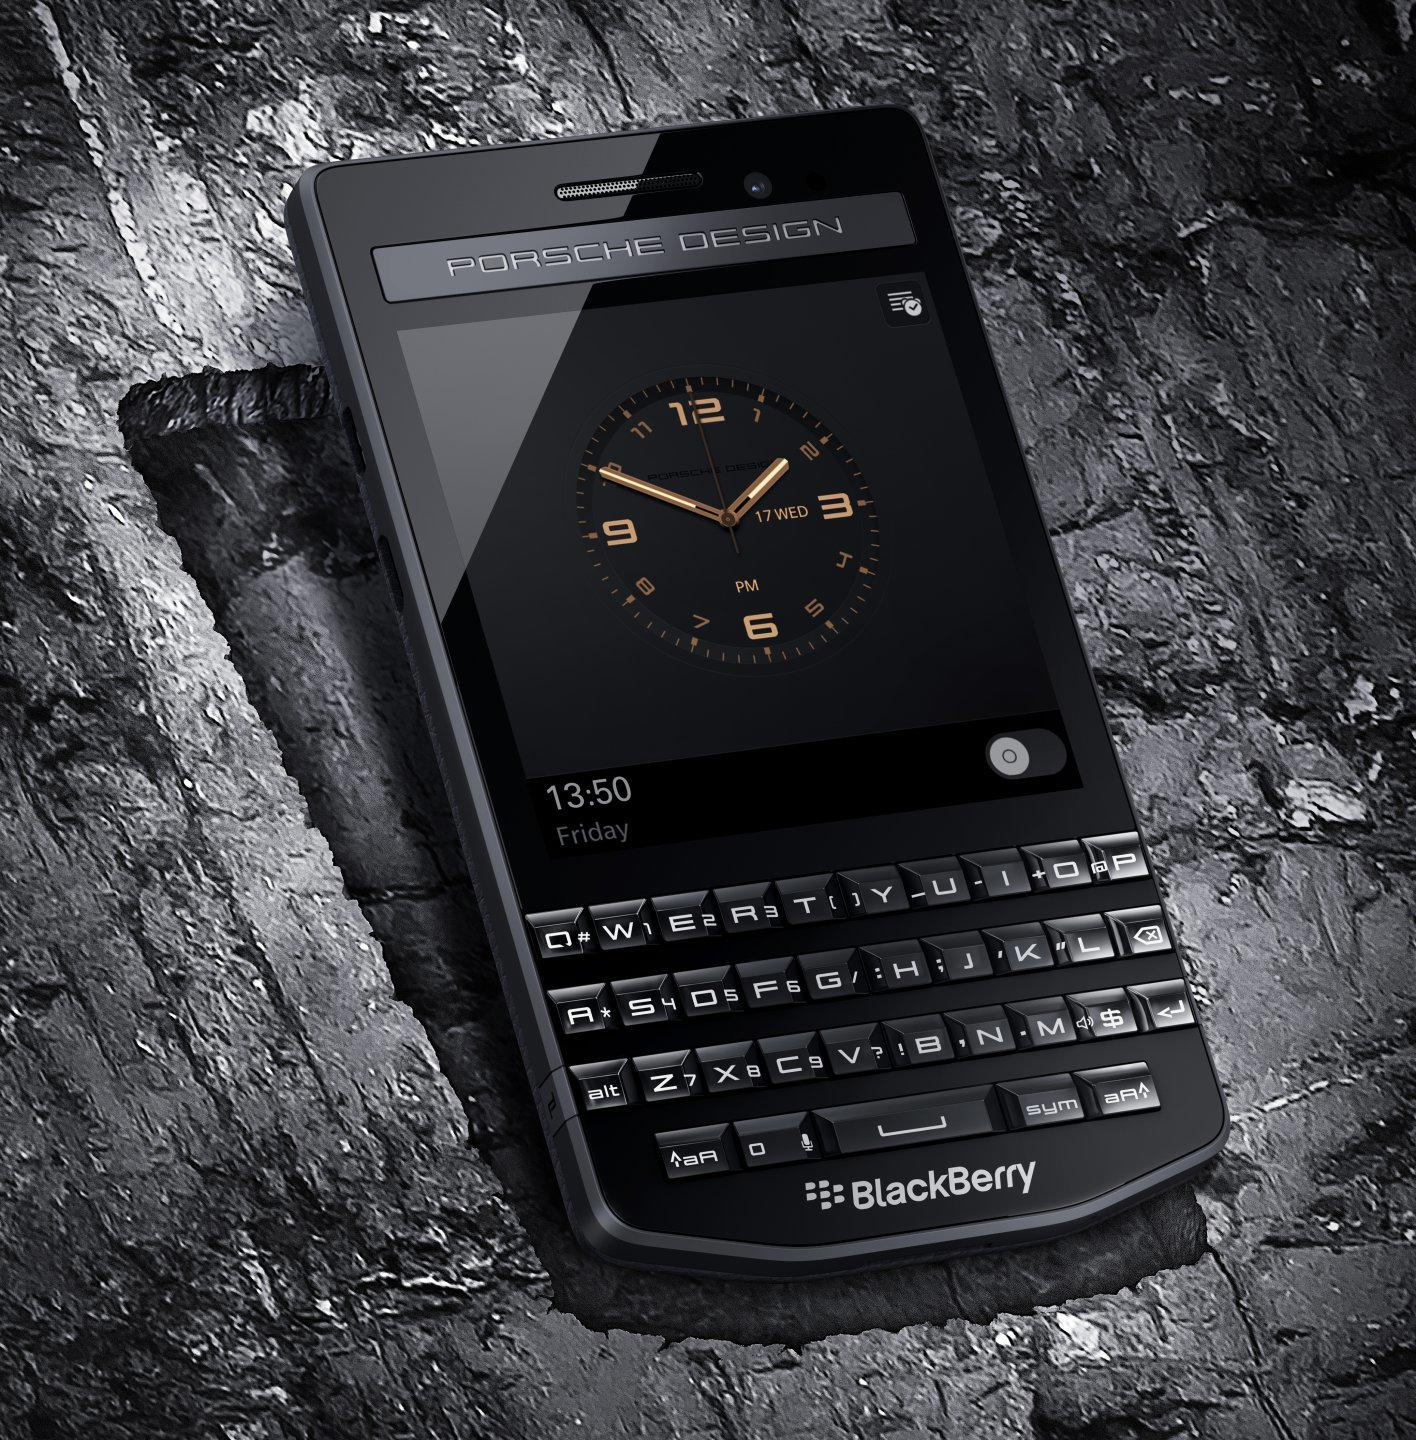 BlackBerry Porsche Design P'9983